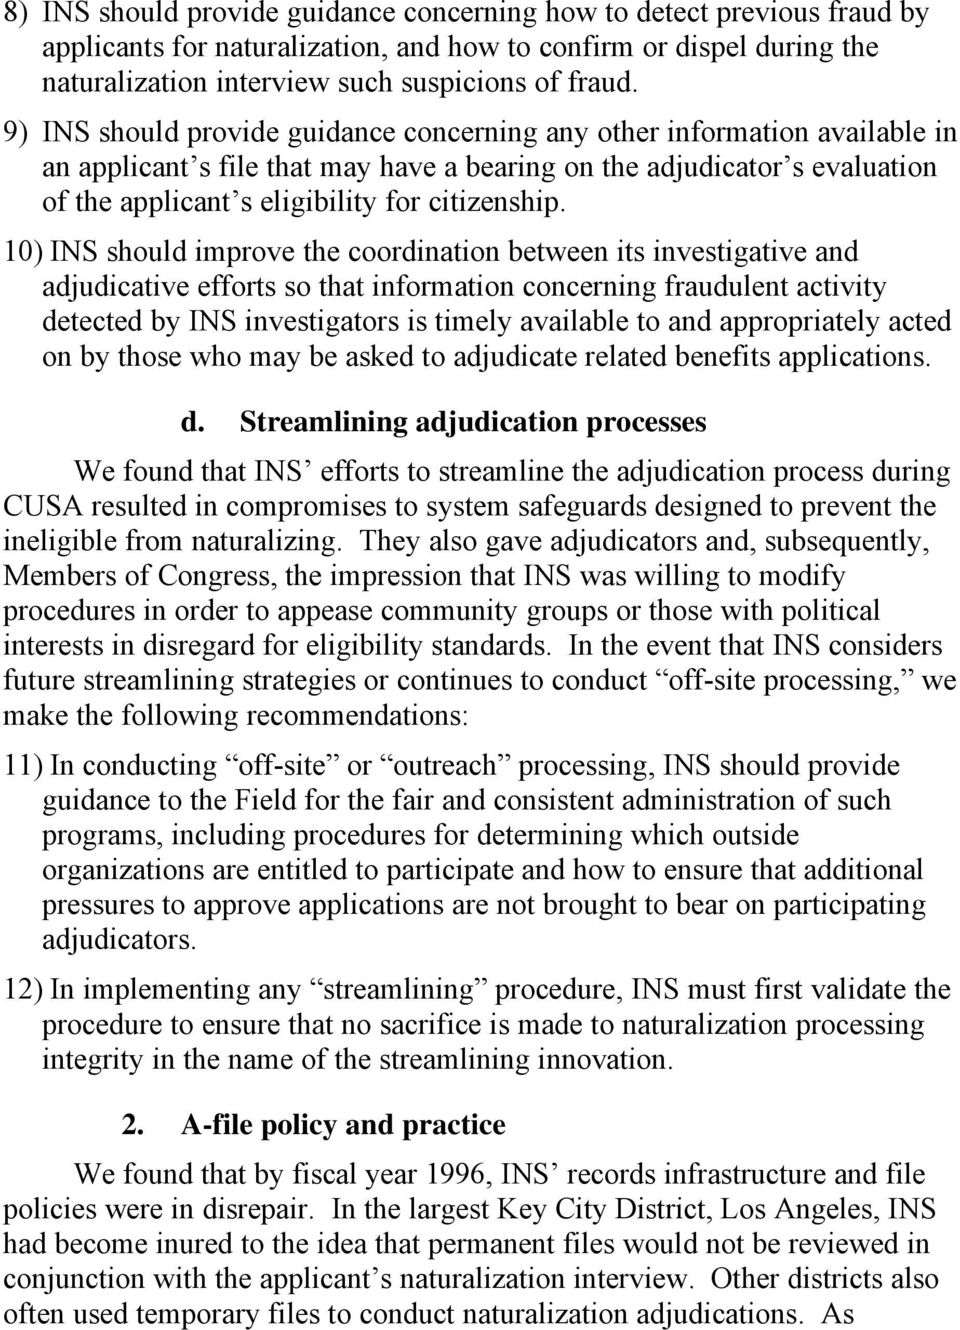 10) INS should improve the coordination between its investigative and adjudicative efforts so that information concerning fraudulent activity detected by INS investigators is timely available to and